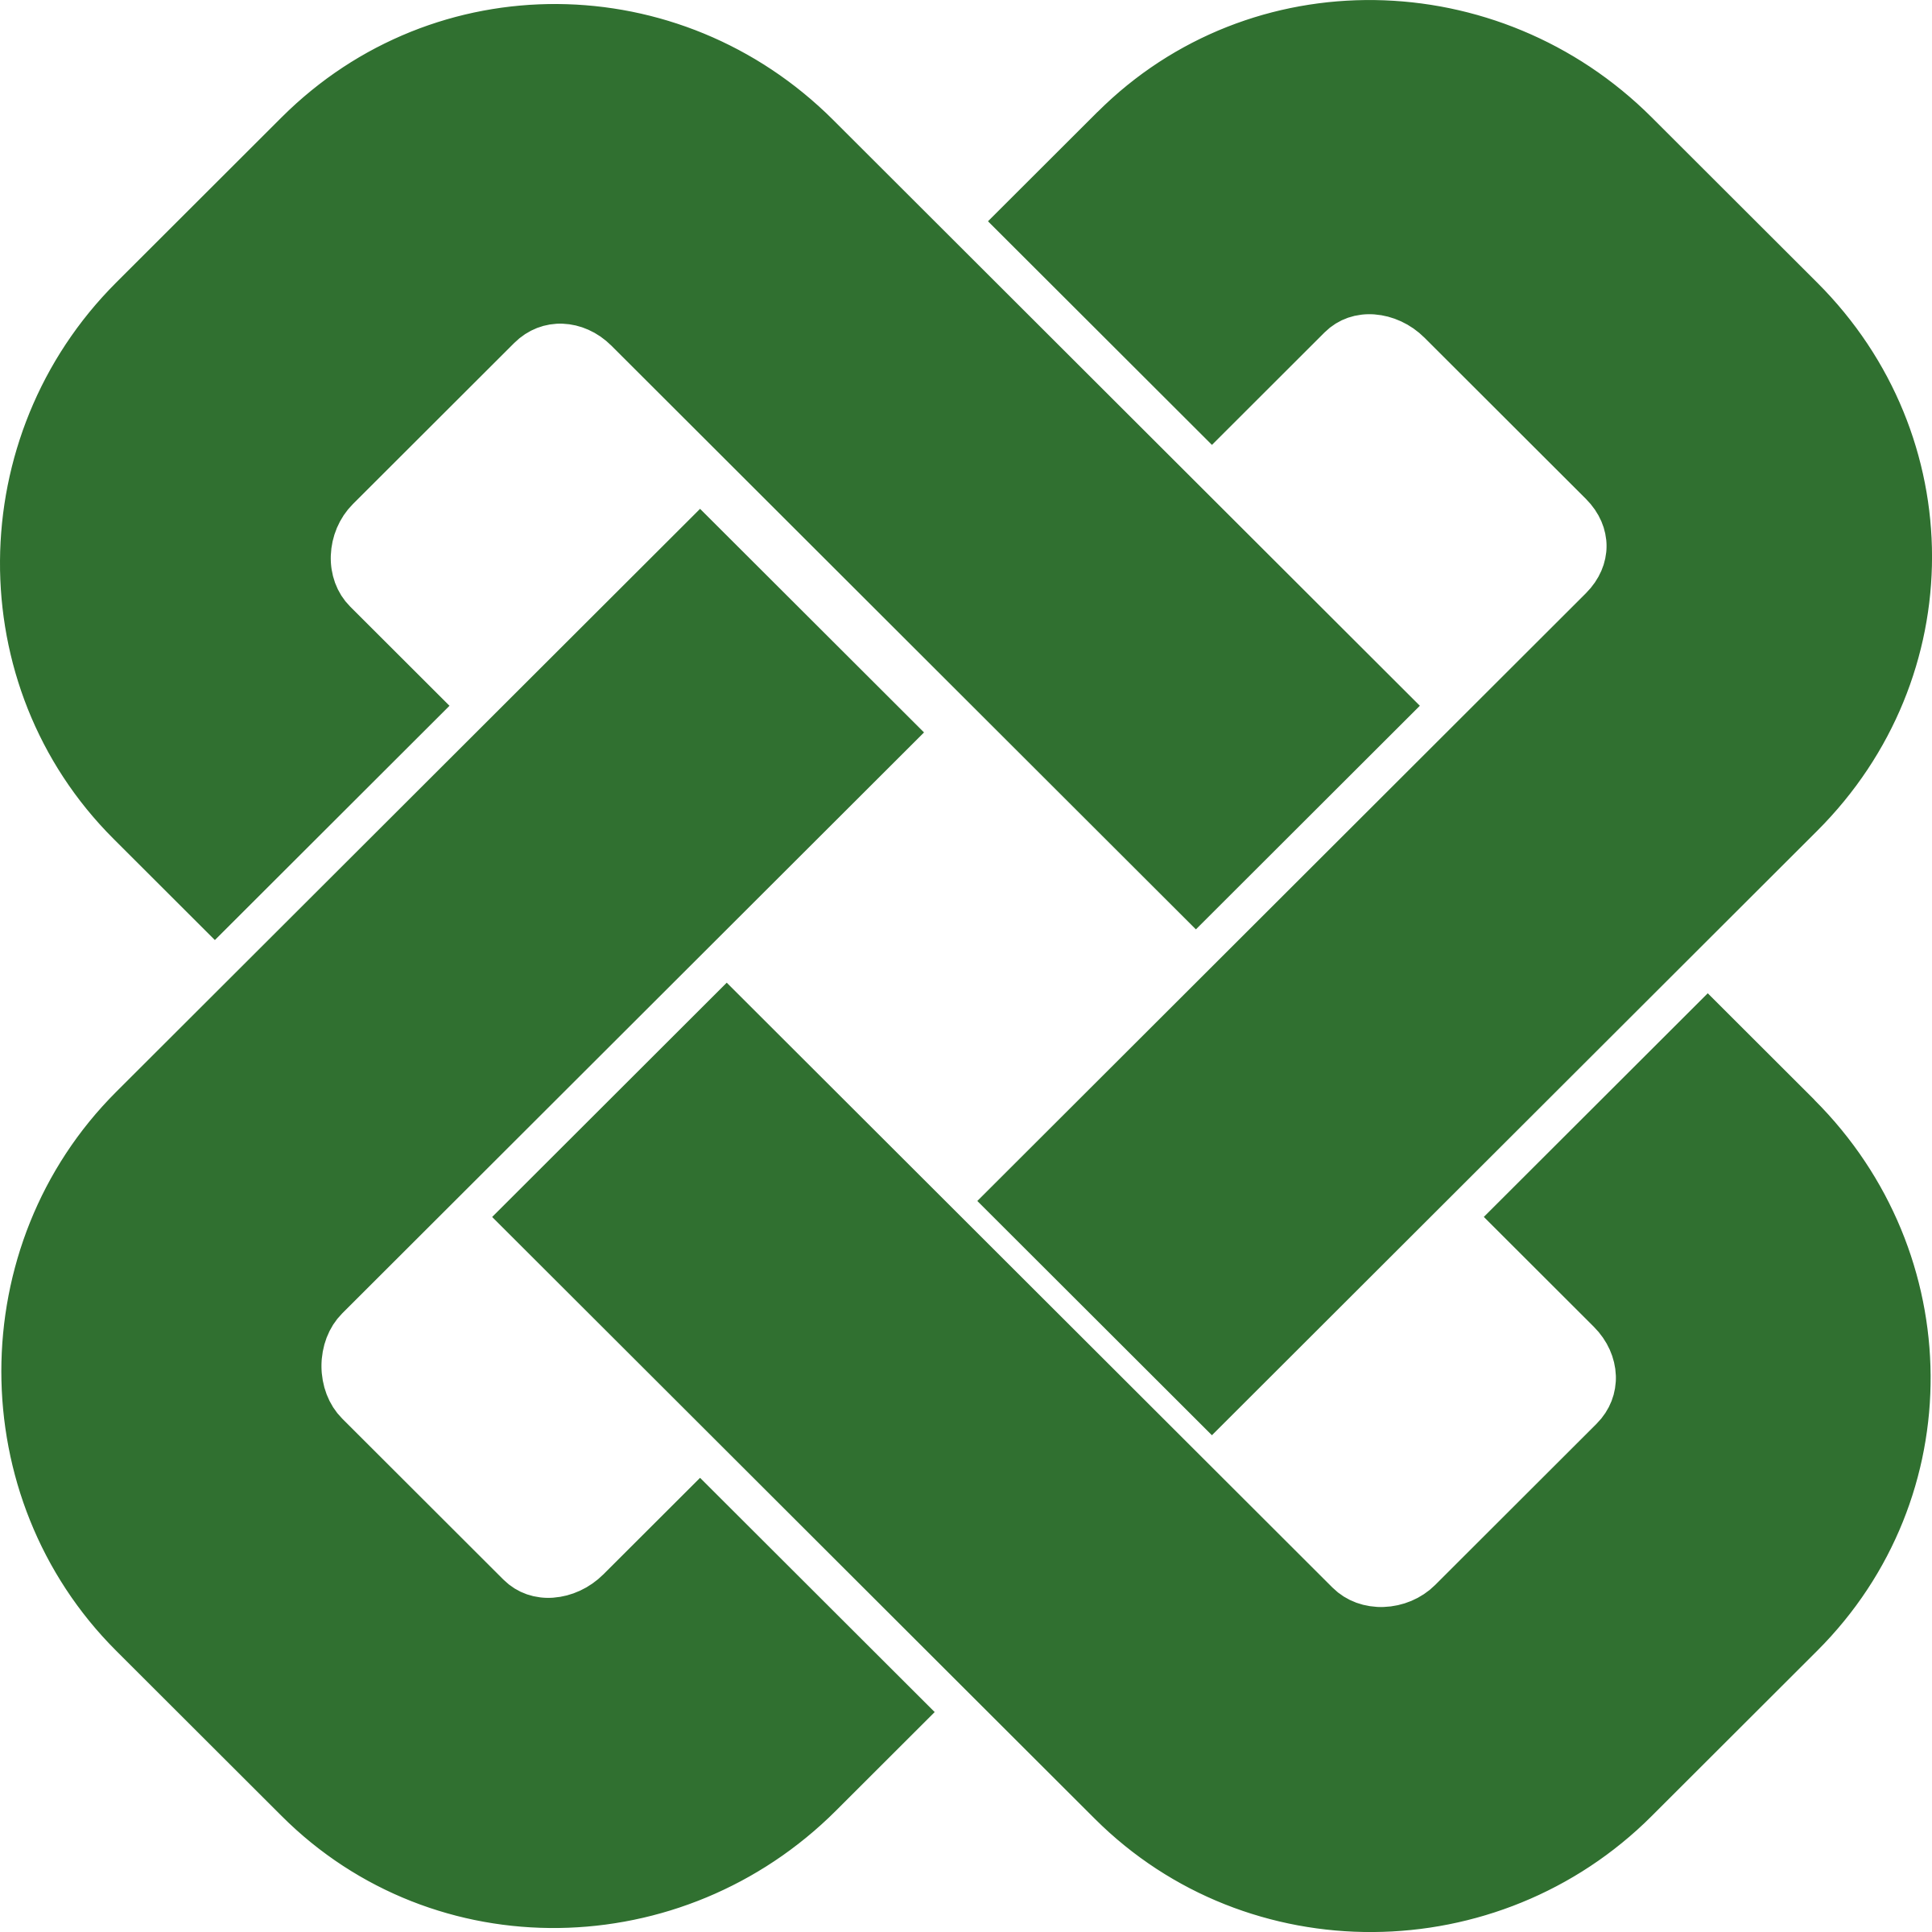 Celtic knot. Square clipart square number